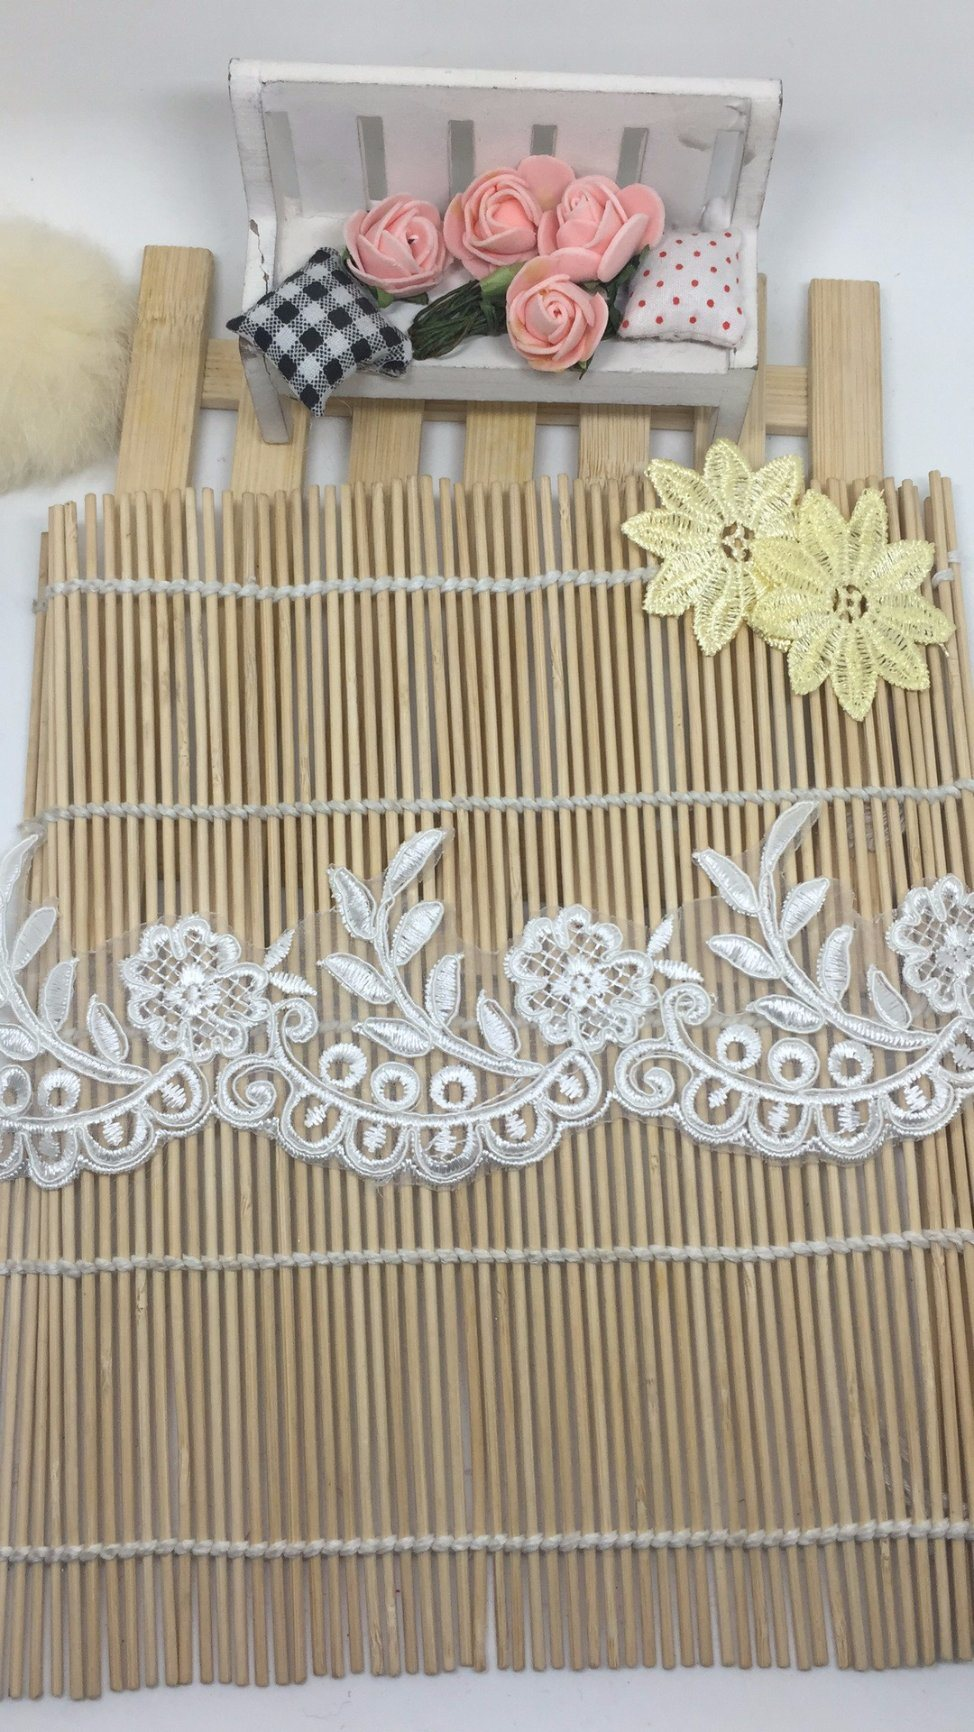 New Design 7.5cm Width Stock Outlet Coiling Embroidery Lace for Garments Accessory & Home Textiles & Curtains